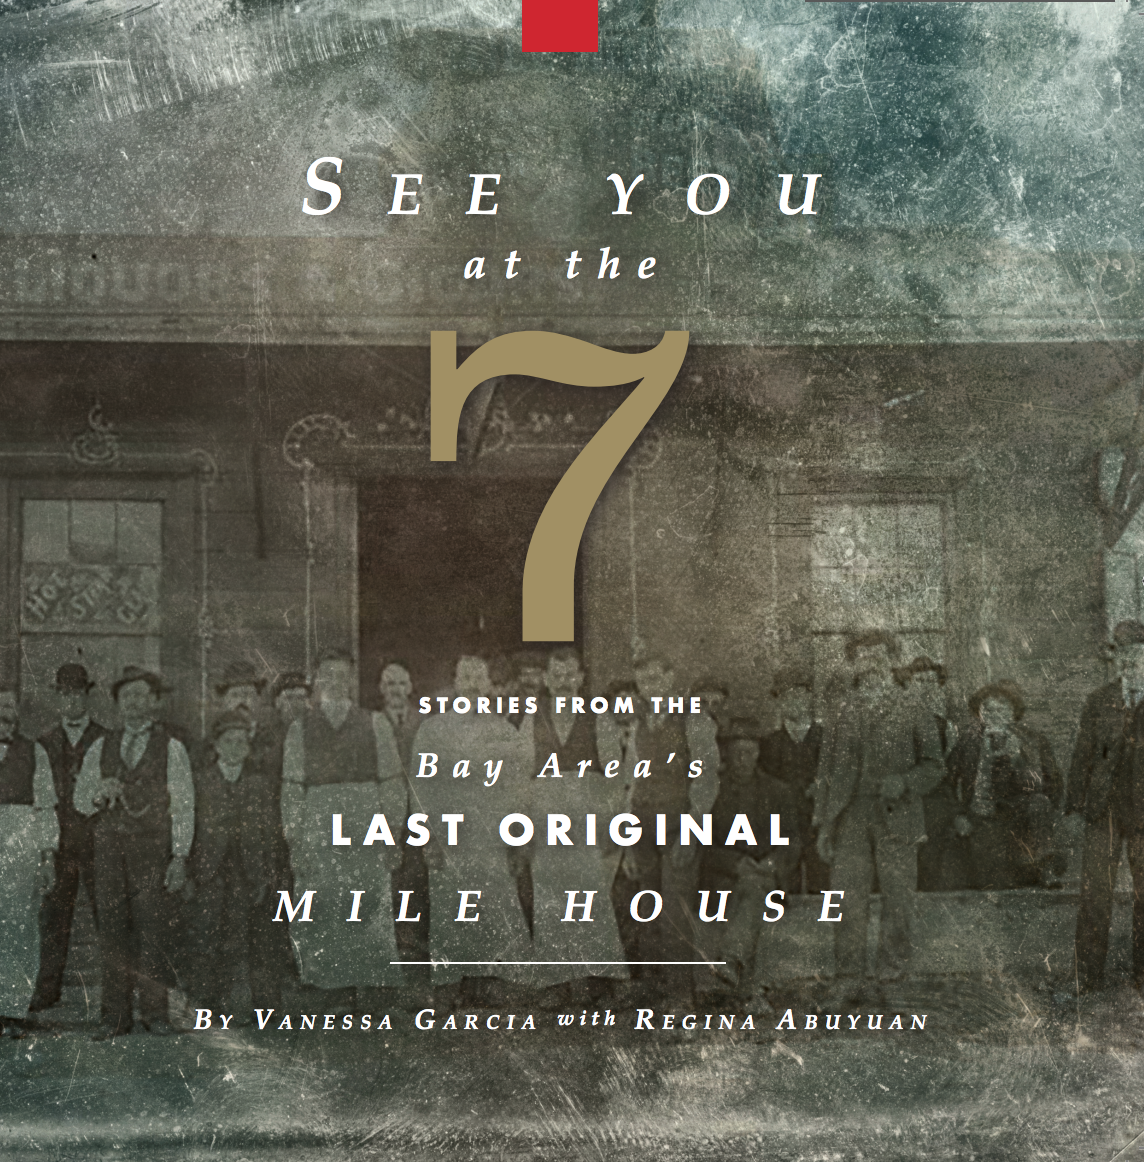 Bay Area Restaurant Owner Publishes Book About 160 Year